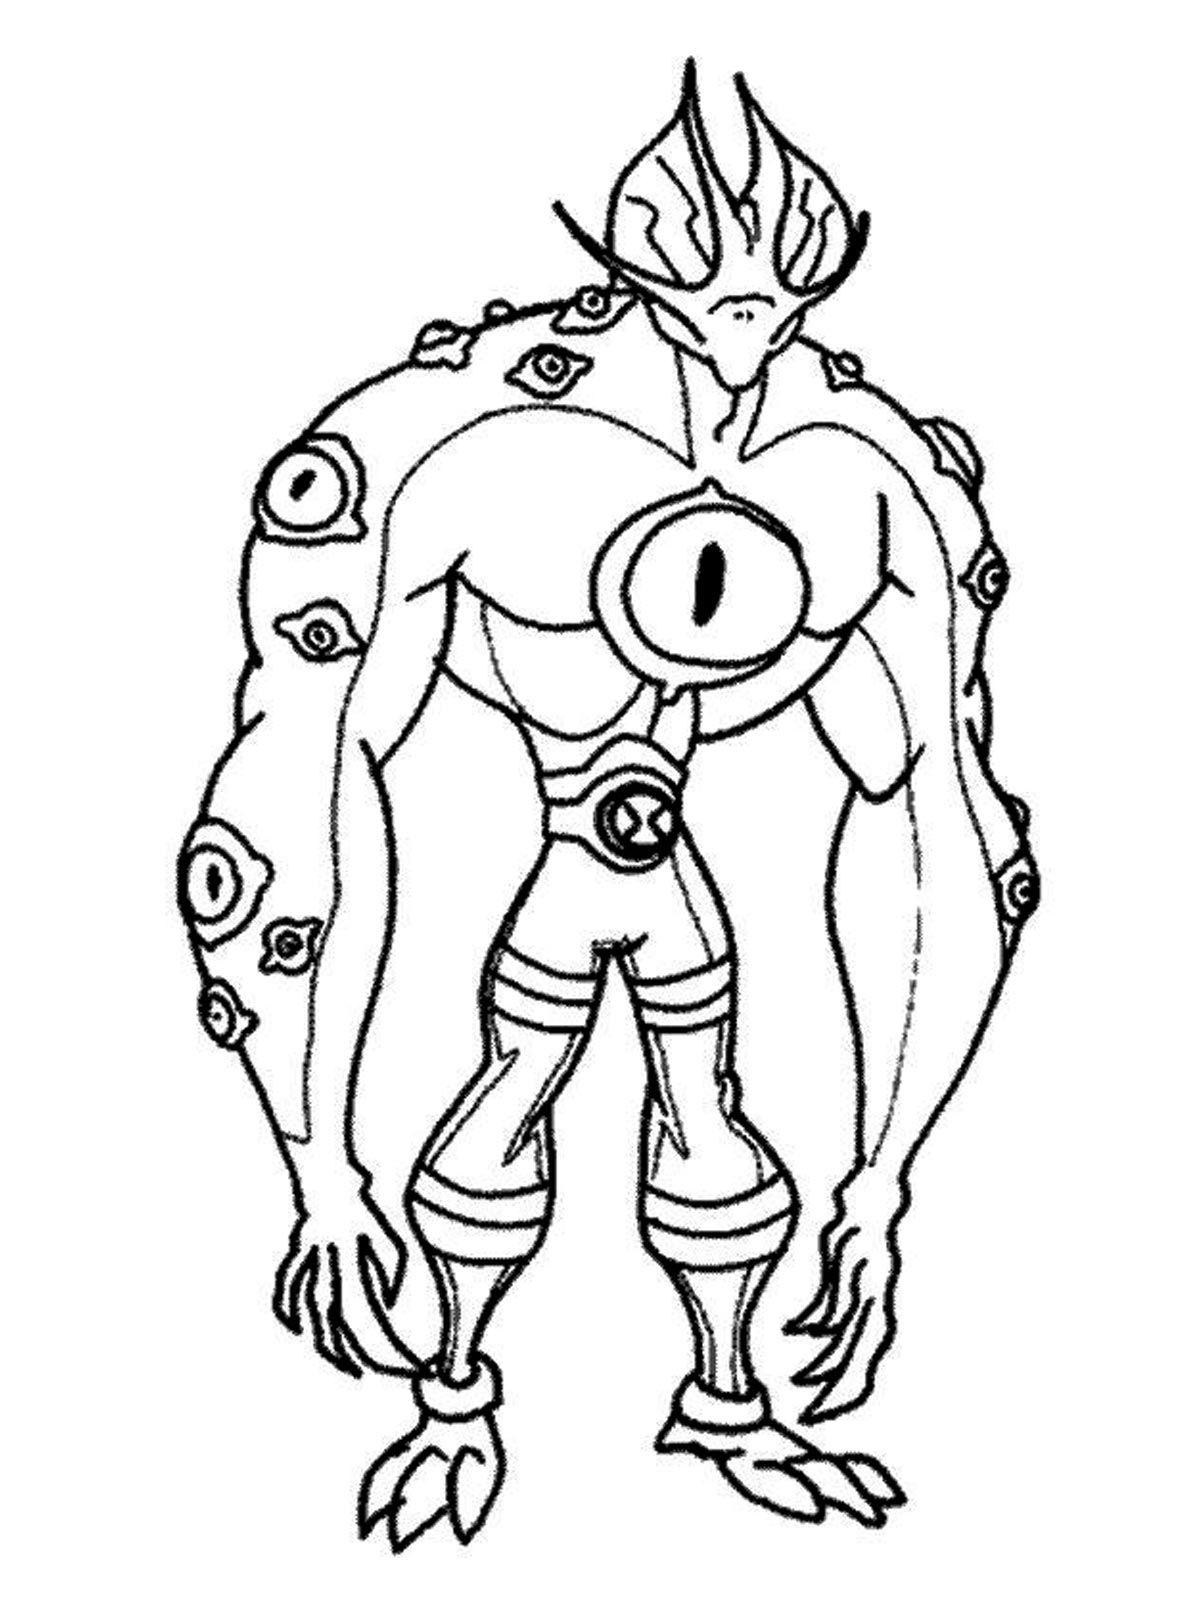 Ben 10 Sw Fire Coloring Pages Http Www Kidscp Com Ben 10 Benten Coloring Pages